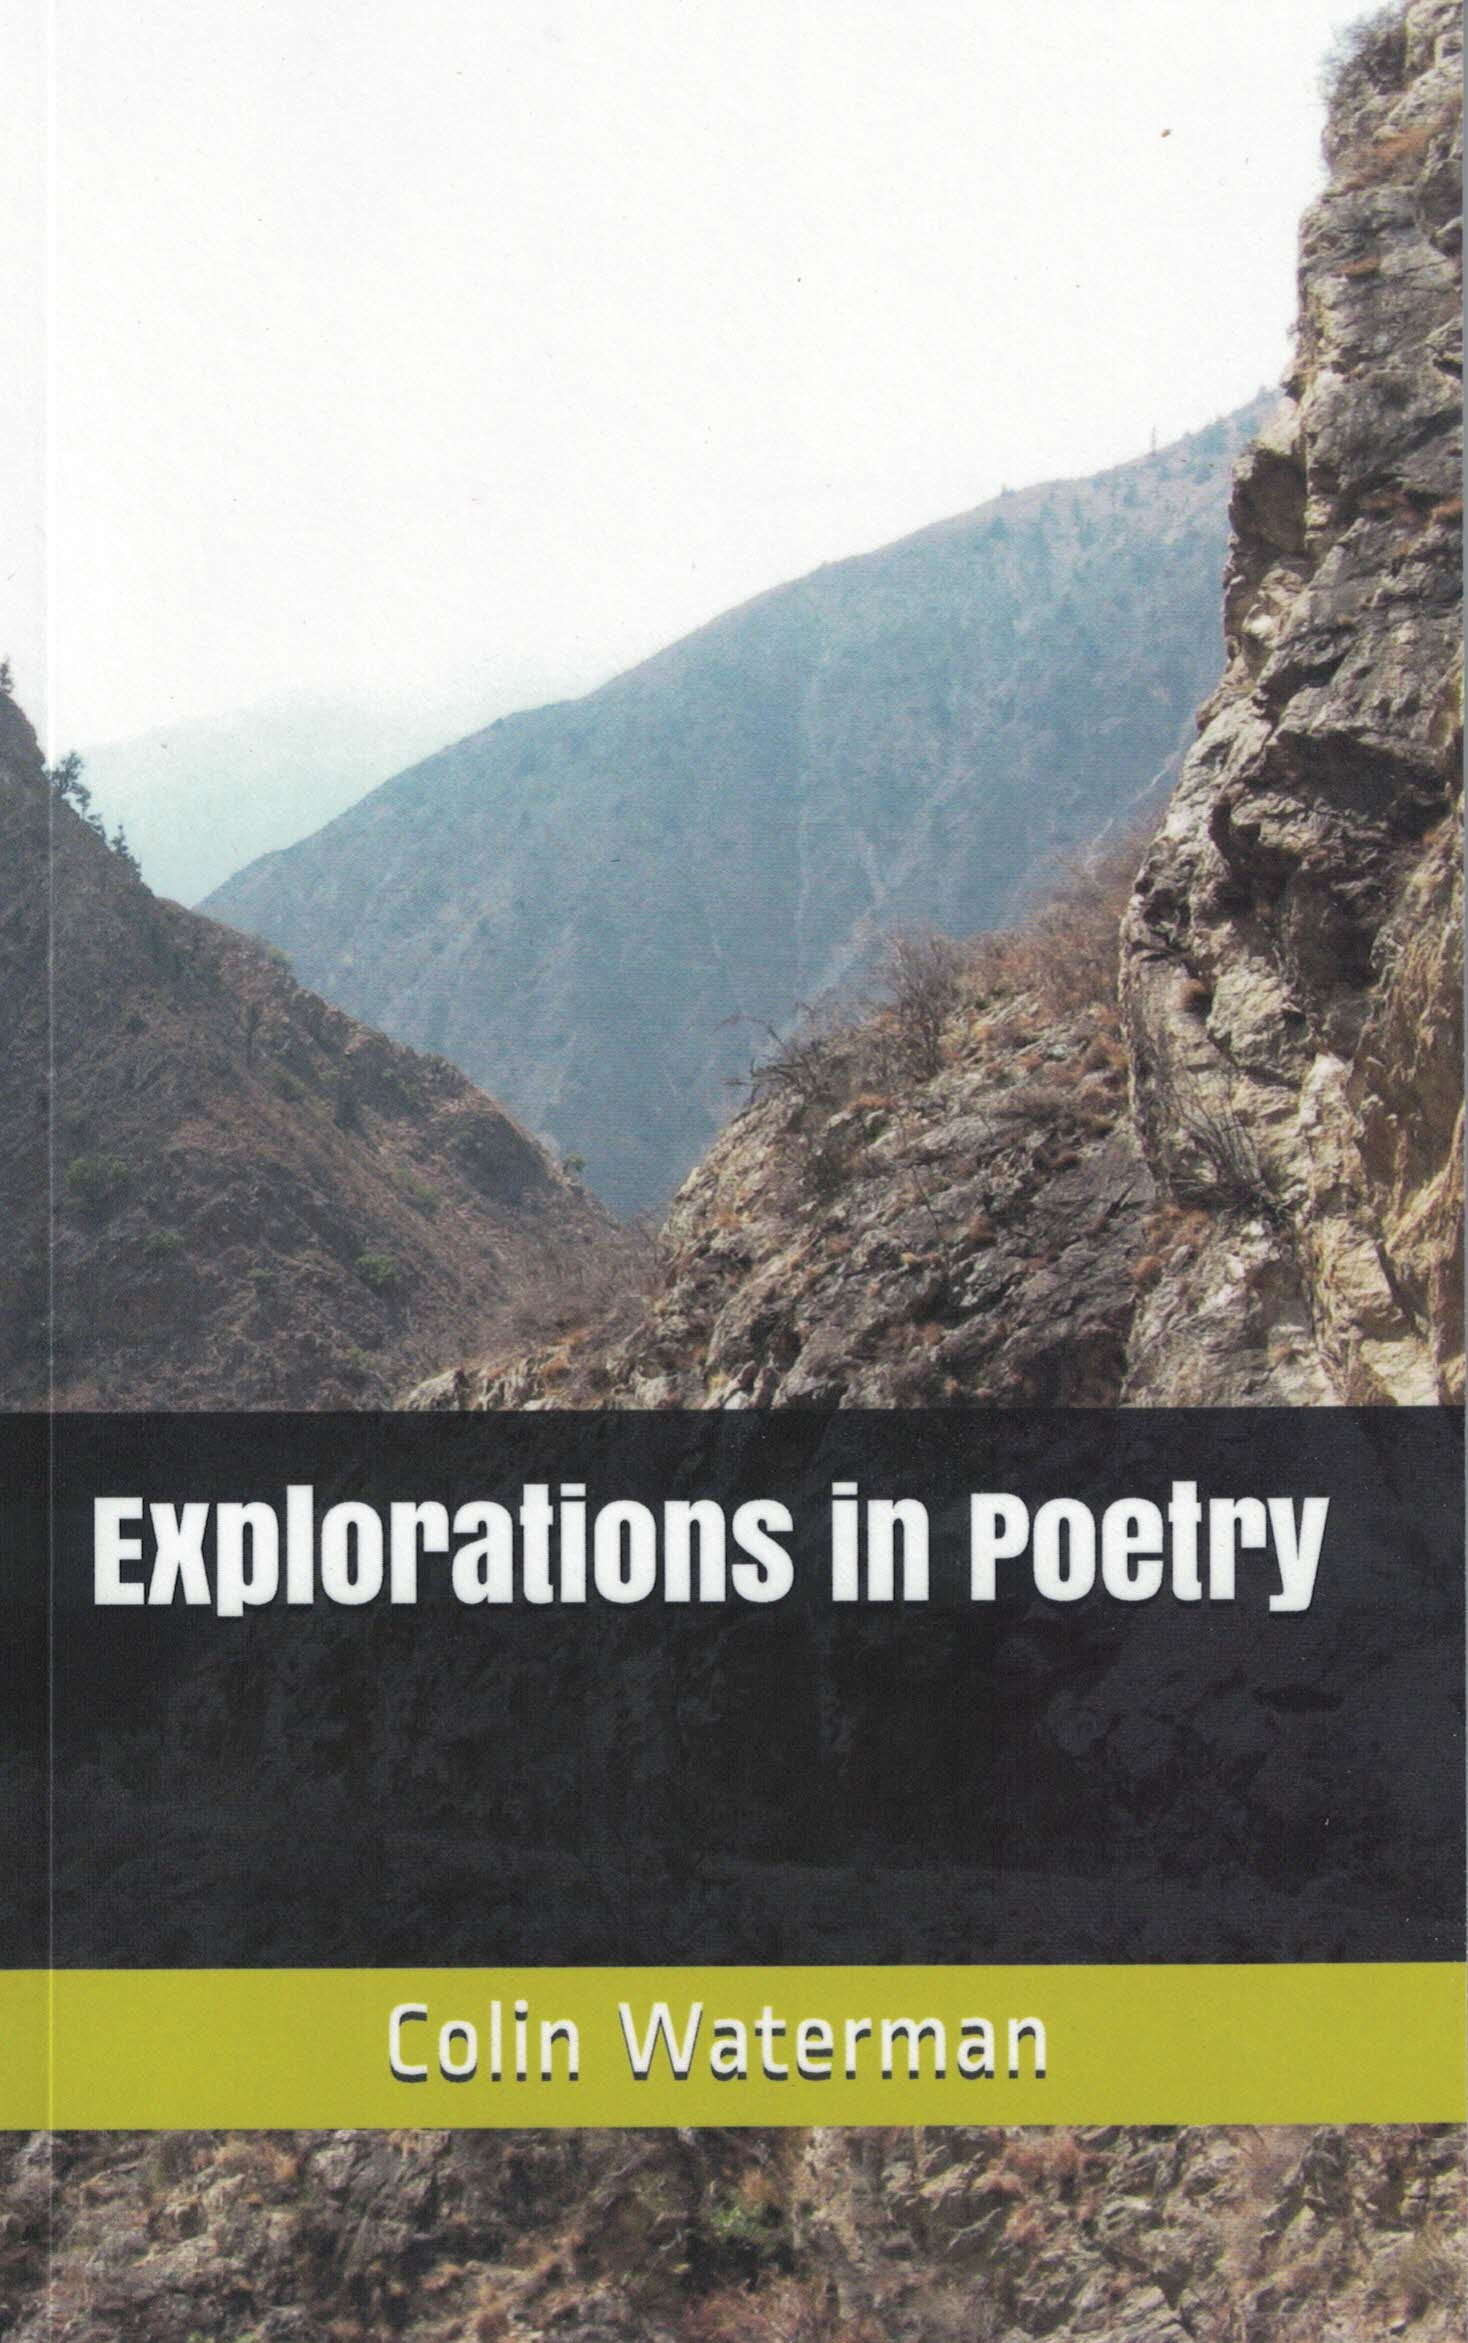 Explorations cover.jpg